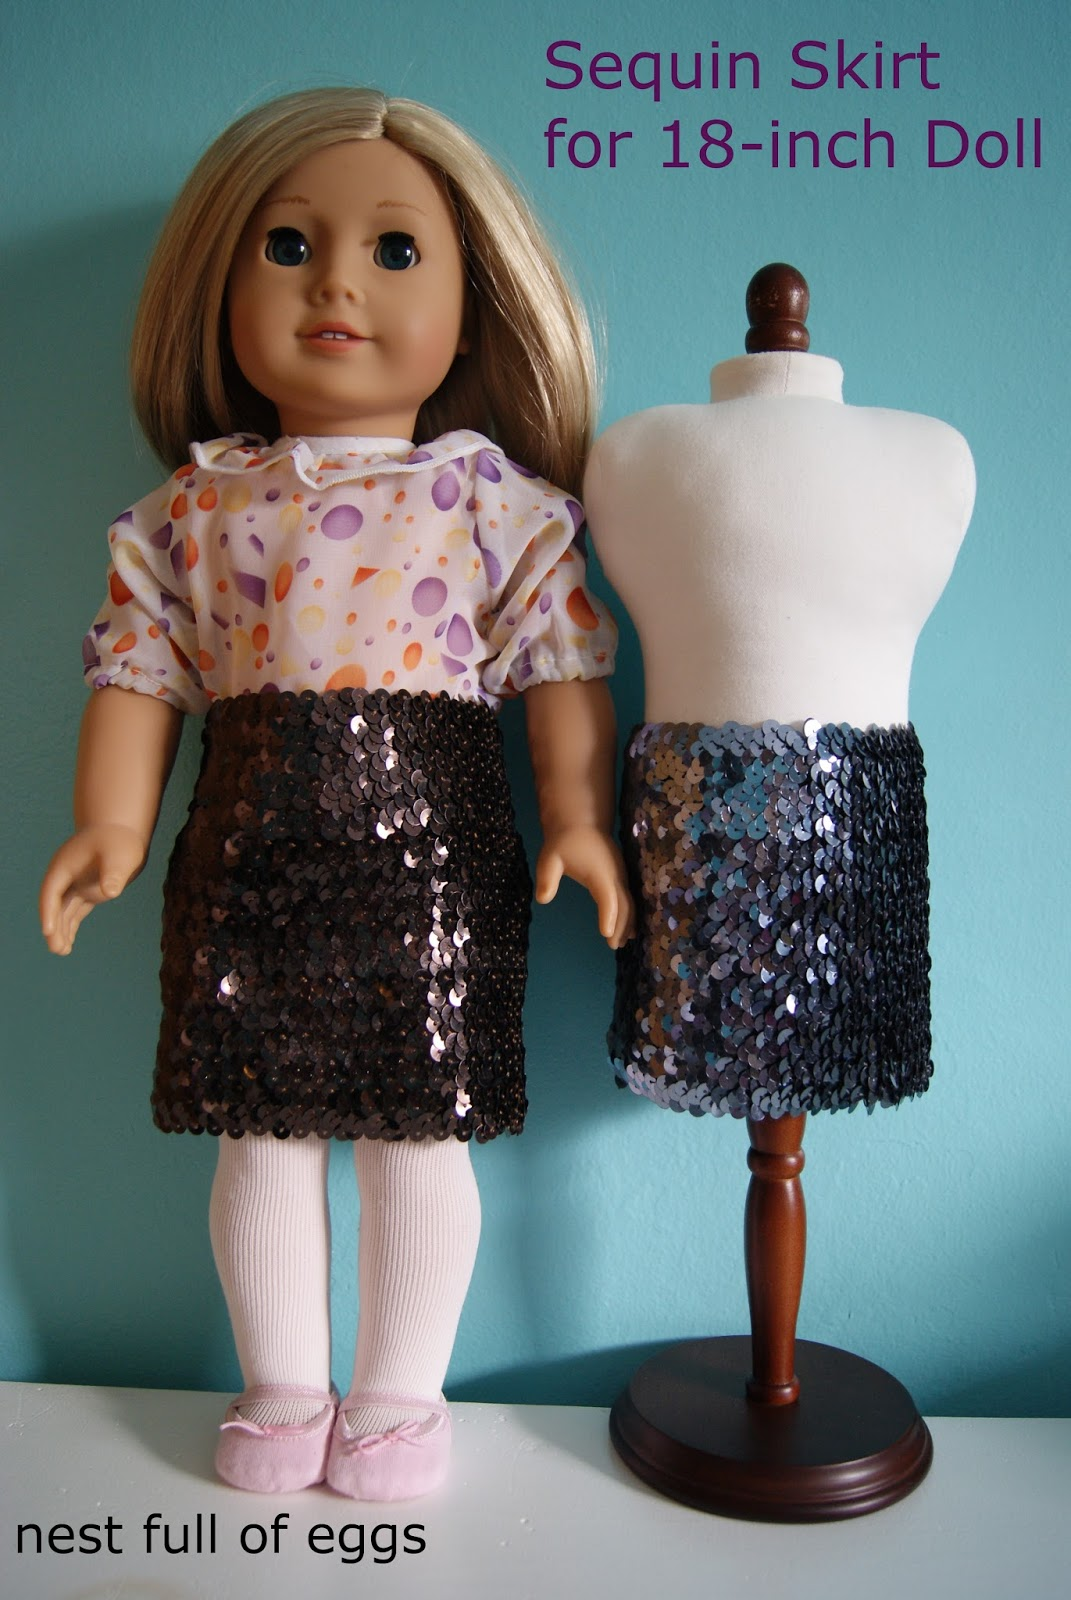 Sequin skirt for 18-inch doll by nest full of eggs